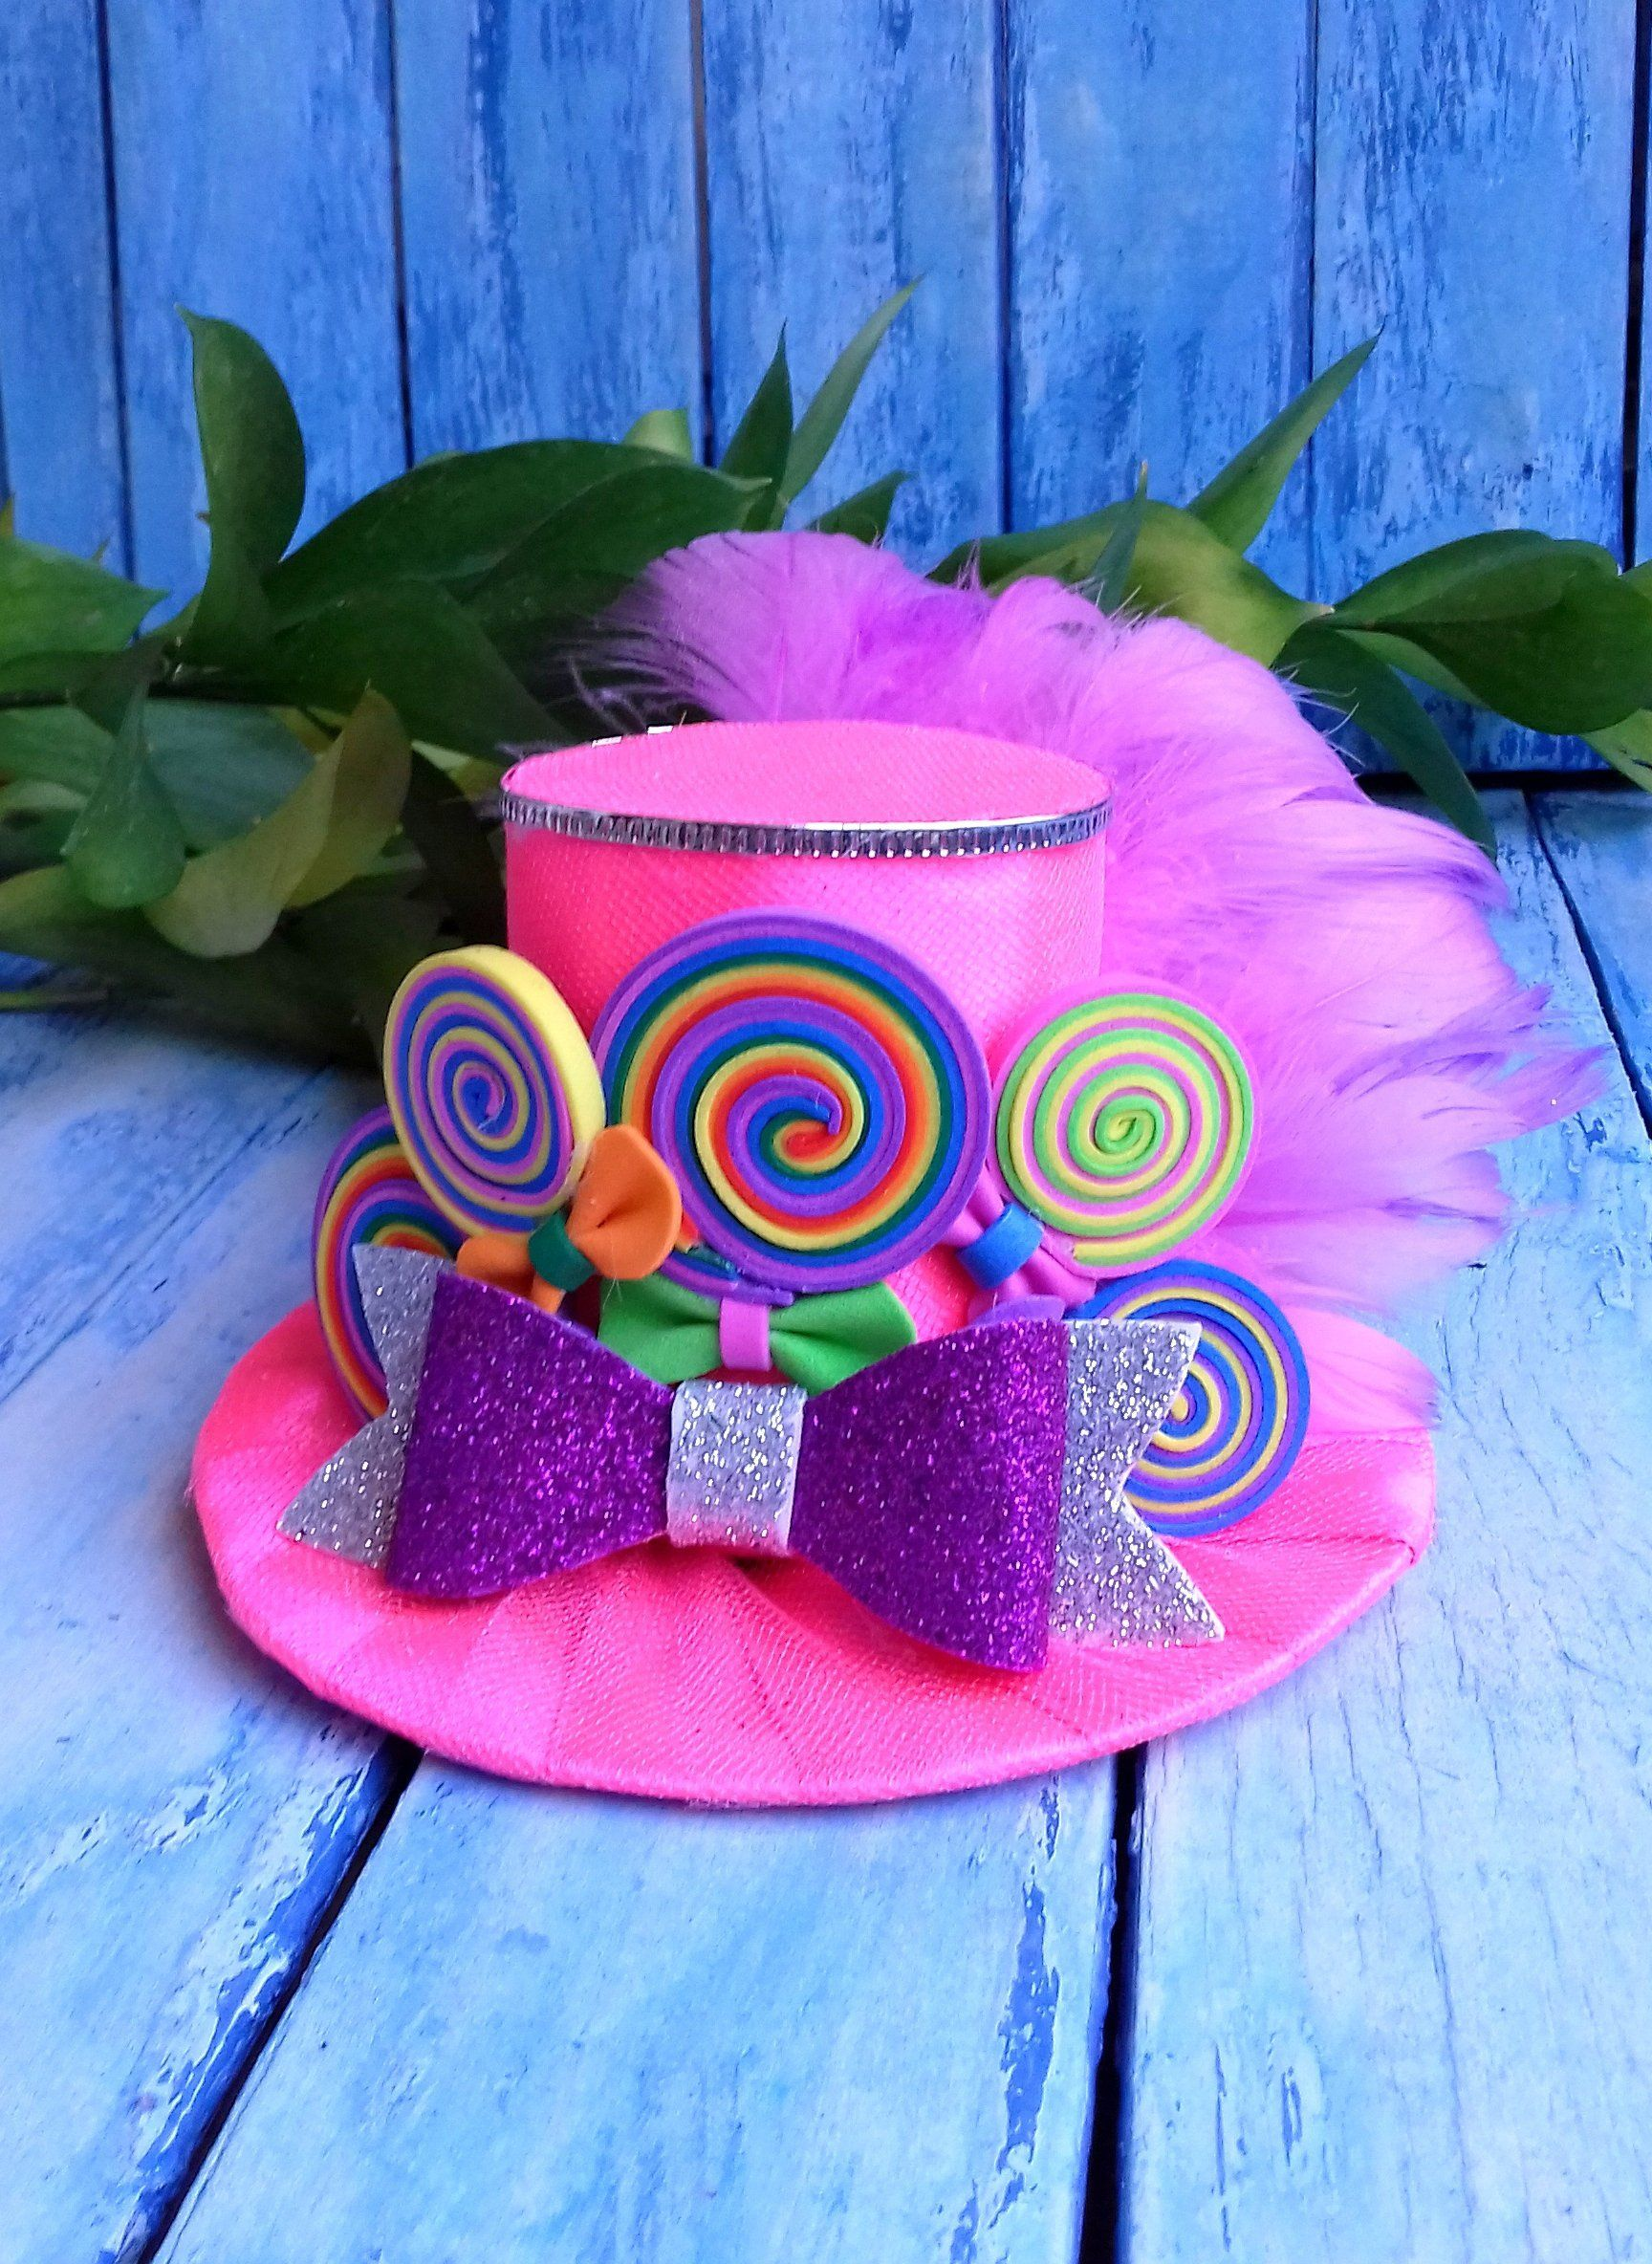 Rainbow mini top hat, Pink mini top hat, Fascinator, Birthday party hat, Mad hatter hat, Tea party hat, Rainbow headband,Alice in Wonderland #crazyhatdayideas